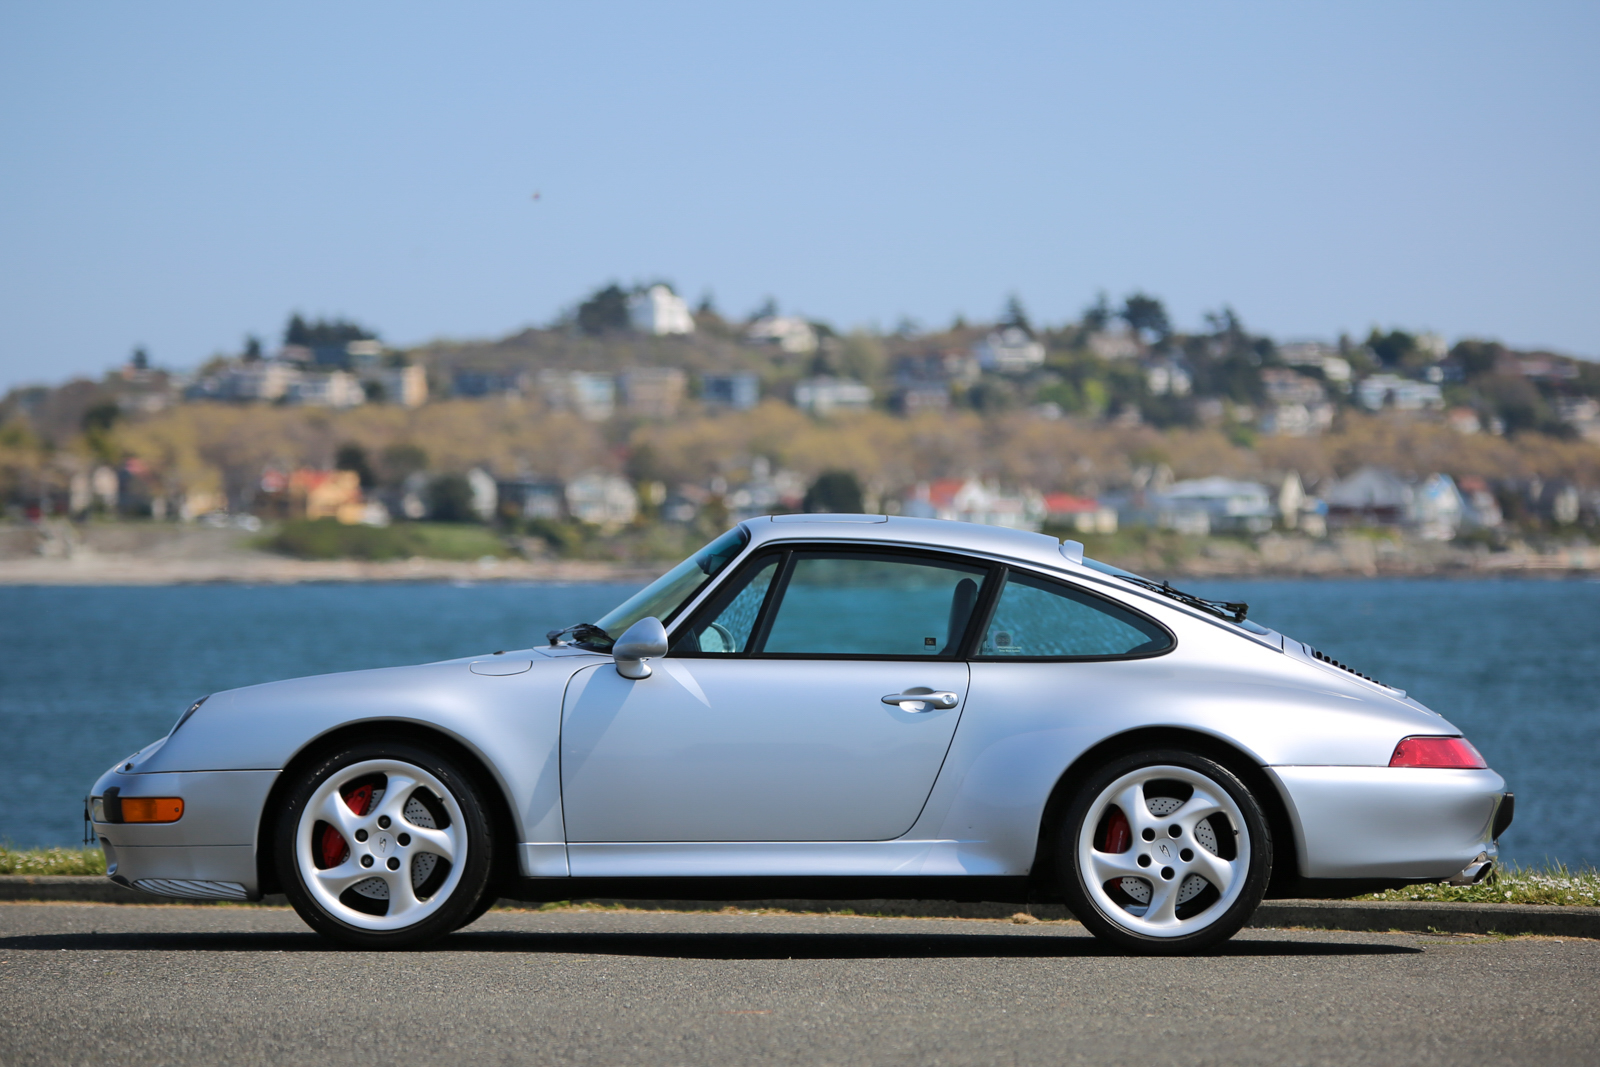 1996 Porsche 993 / 911 Carrera 4 S For Sale | Silver Arrow